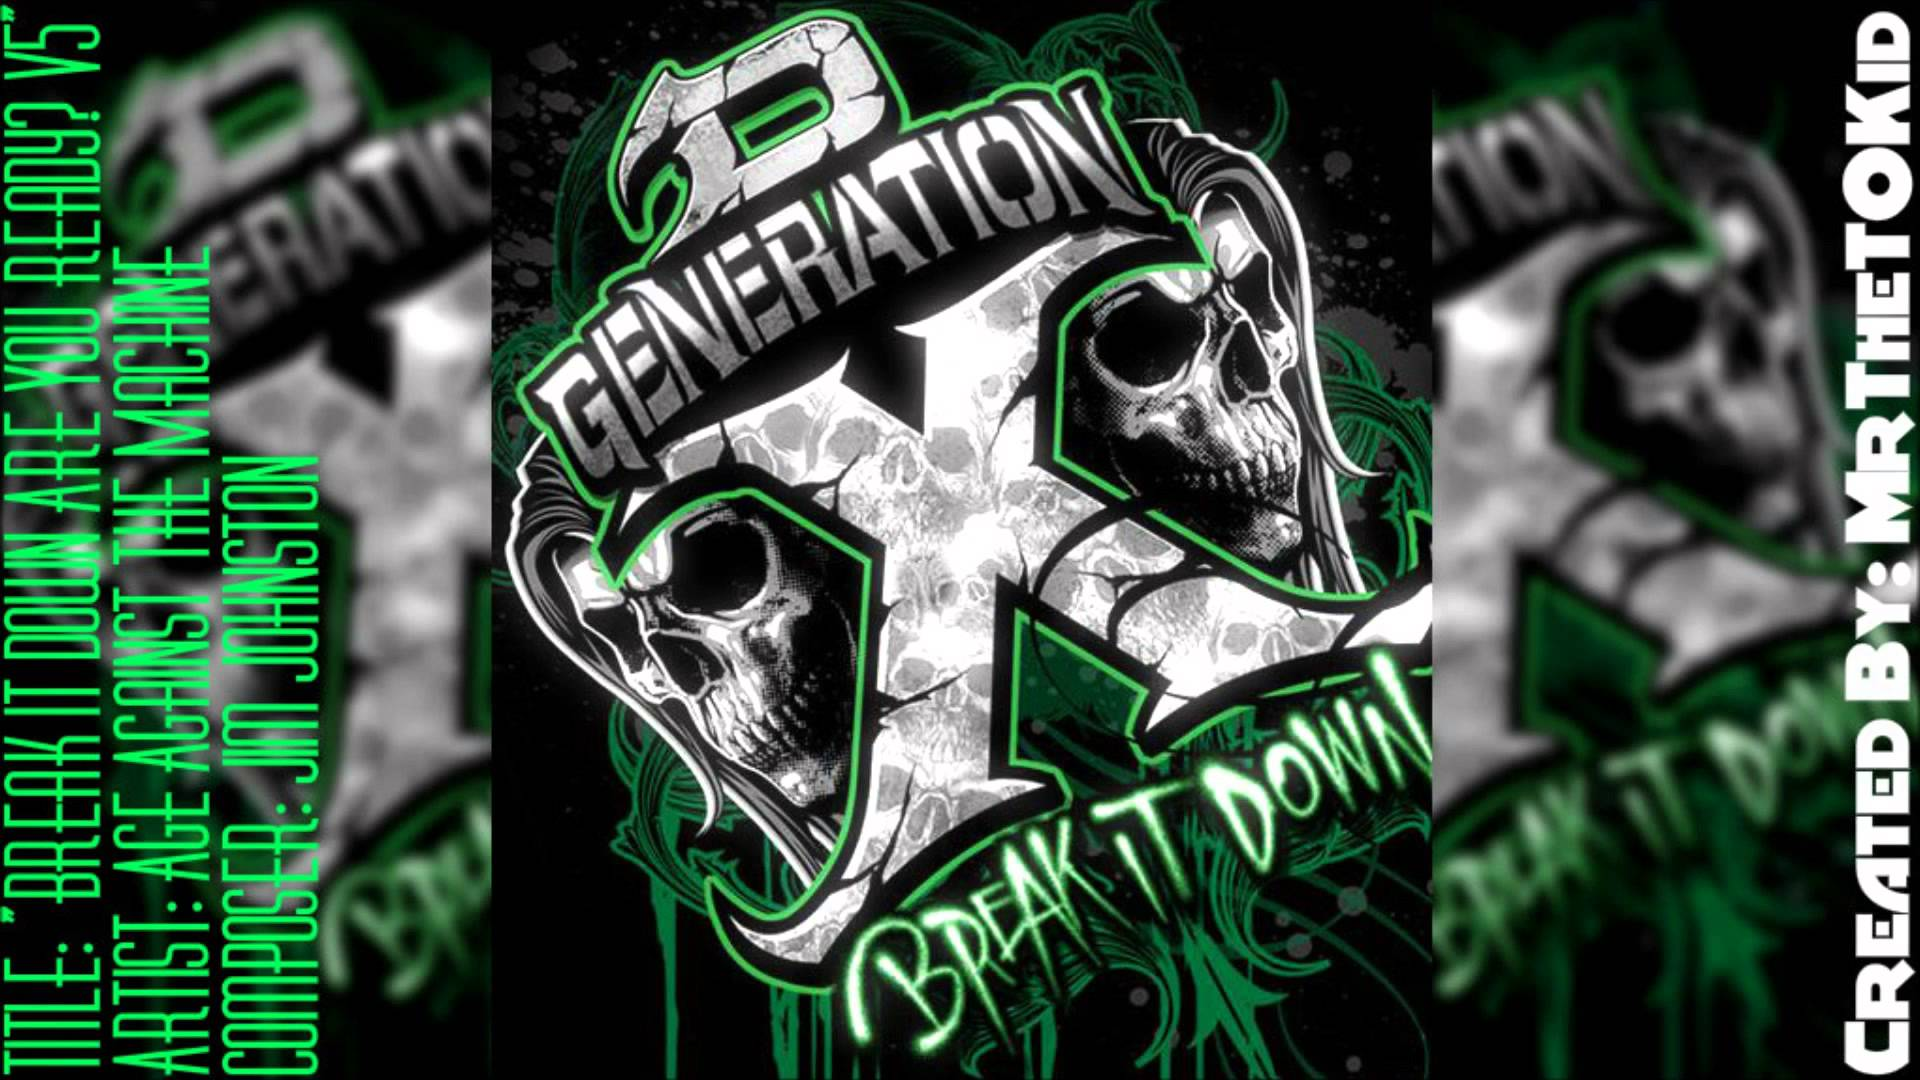 Wwe Dx Hd Wallpaper Wwe Wrestling Dark Skull F Wallpaper 1920x1080 160464